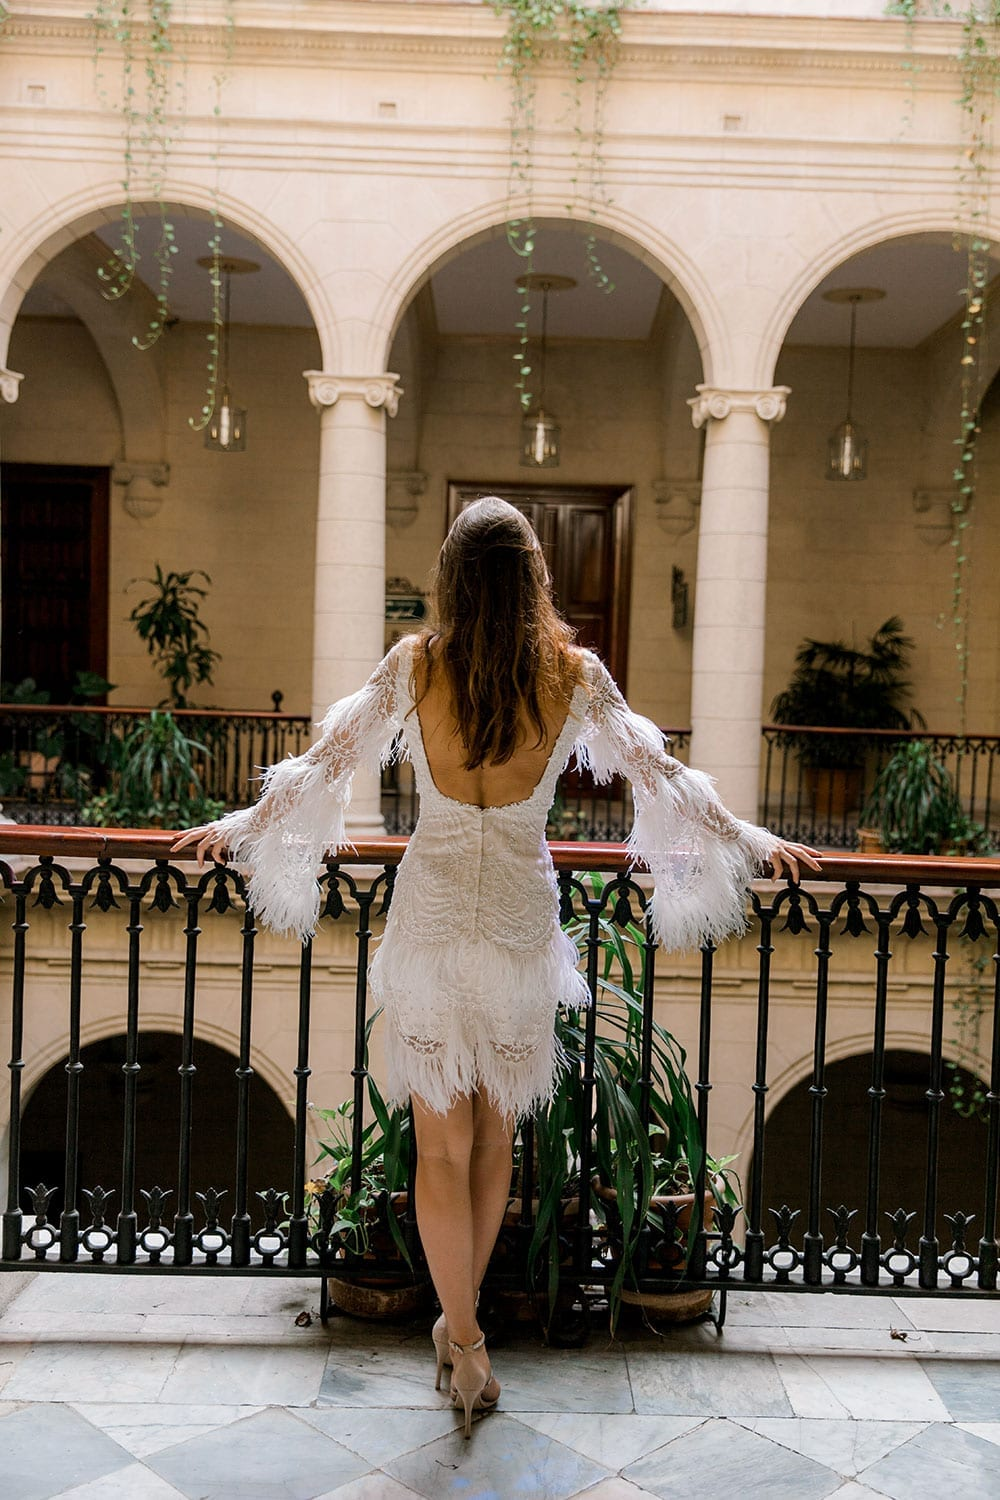 Model wearing Vinka Design Chanel Wedding Dress, a Beaded French Lace Wedding Gown in building archways of Havana